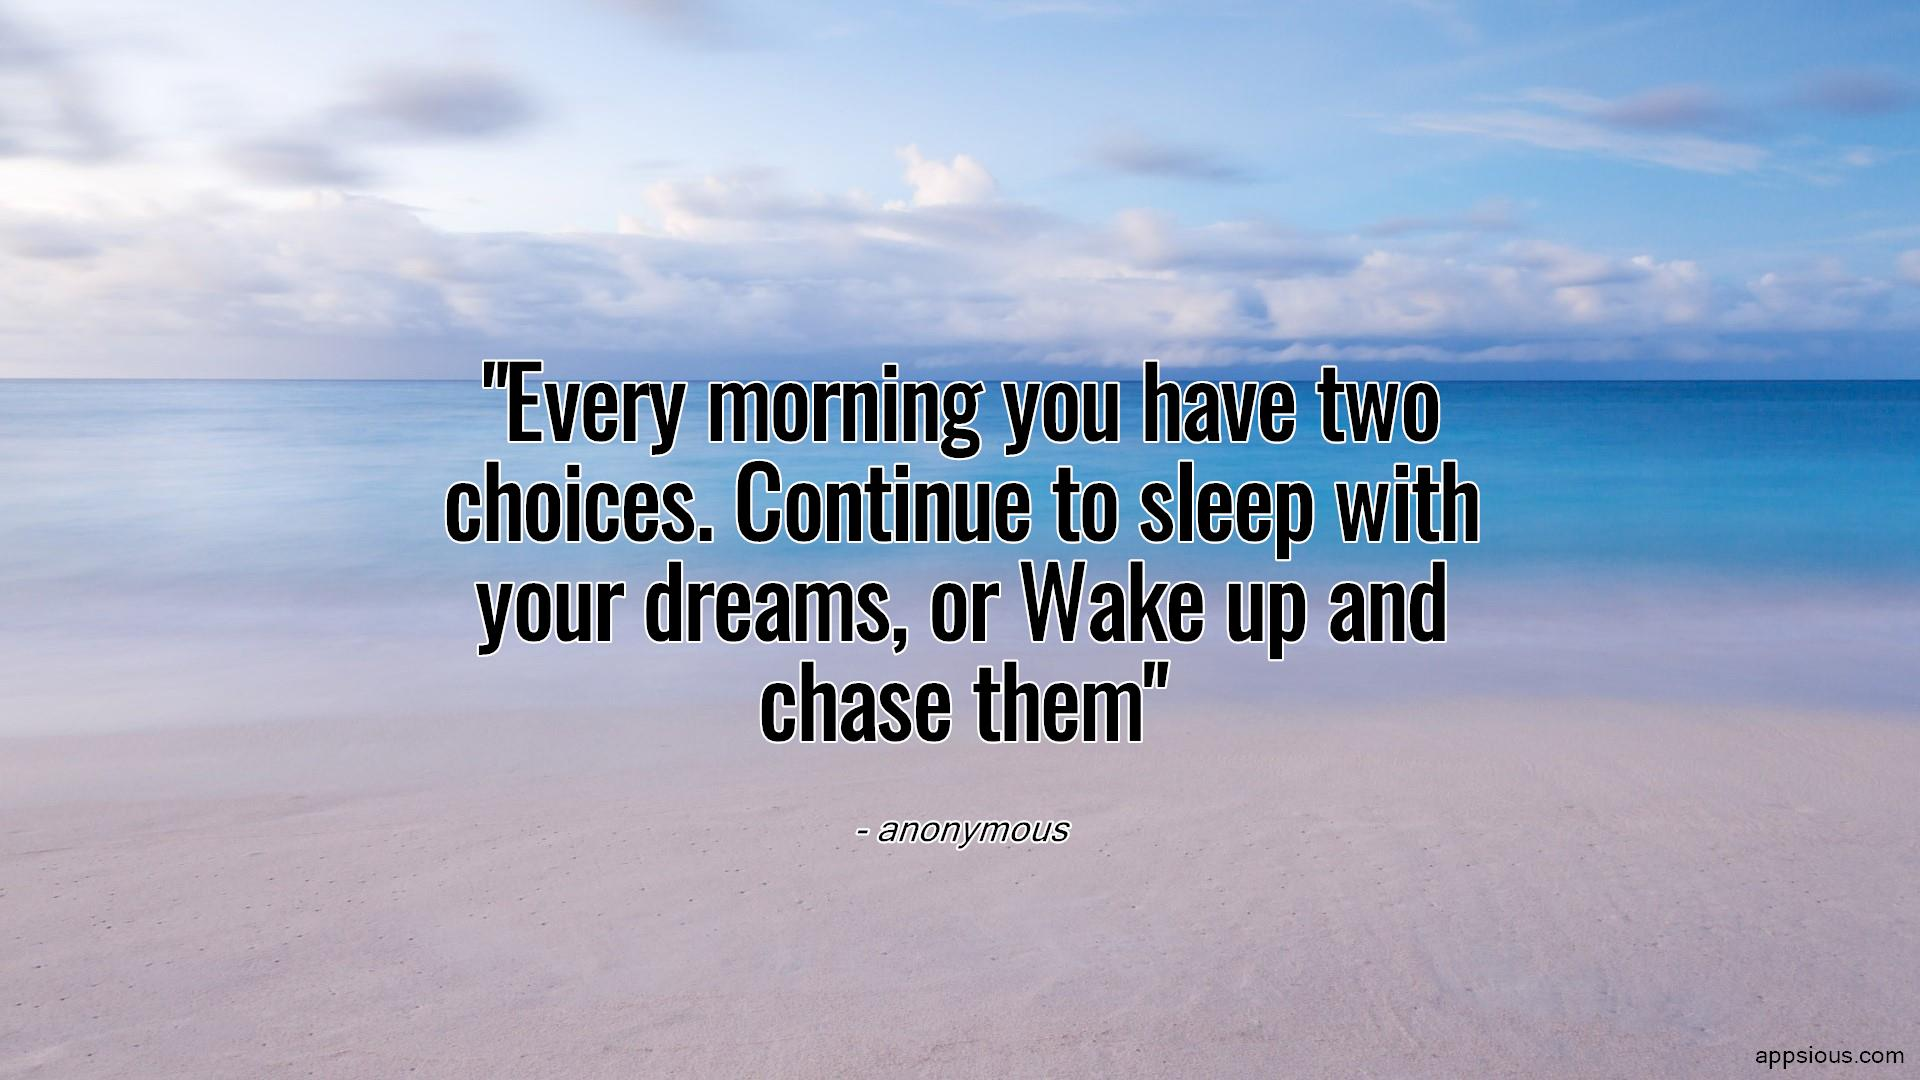 Every morning you have two choices. Continue to sleep with your dreams, or Wake up and chase them